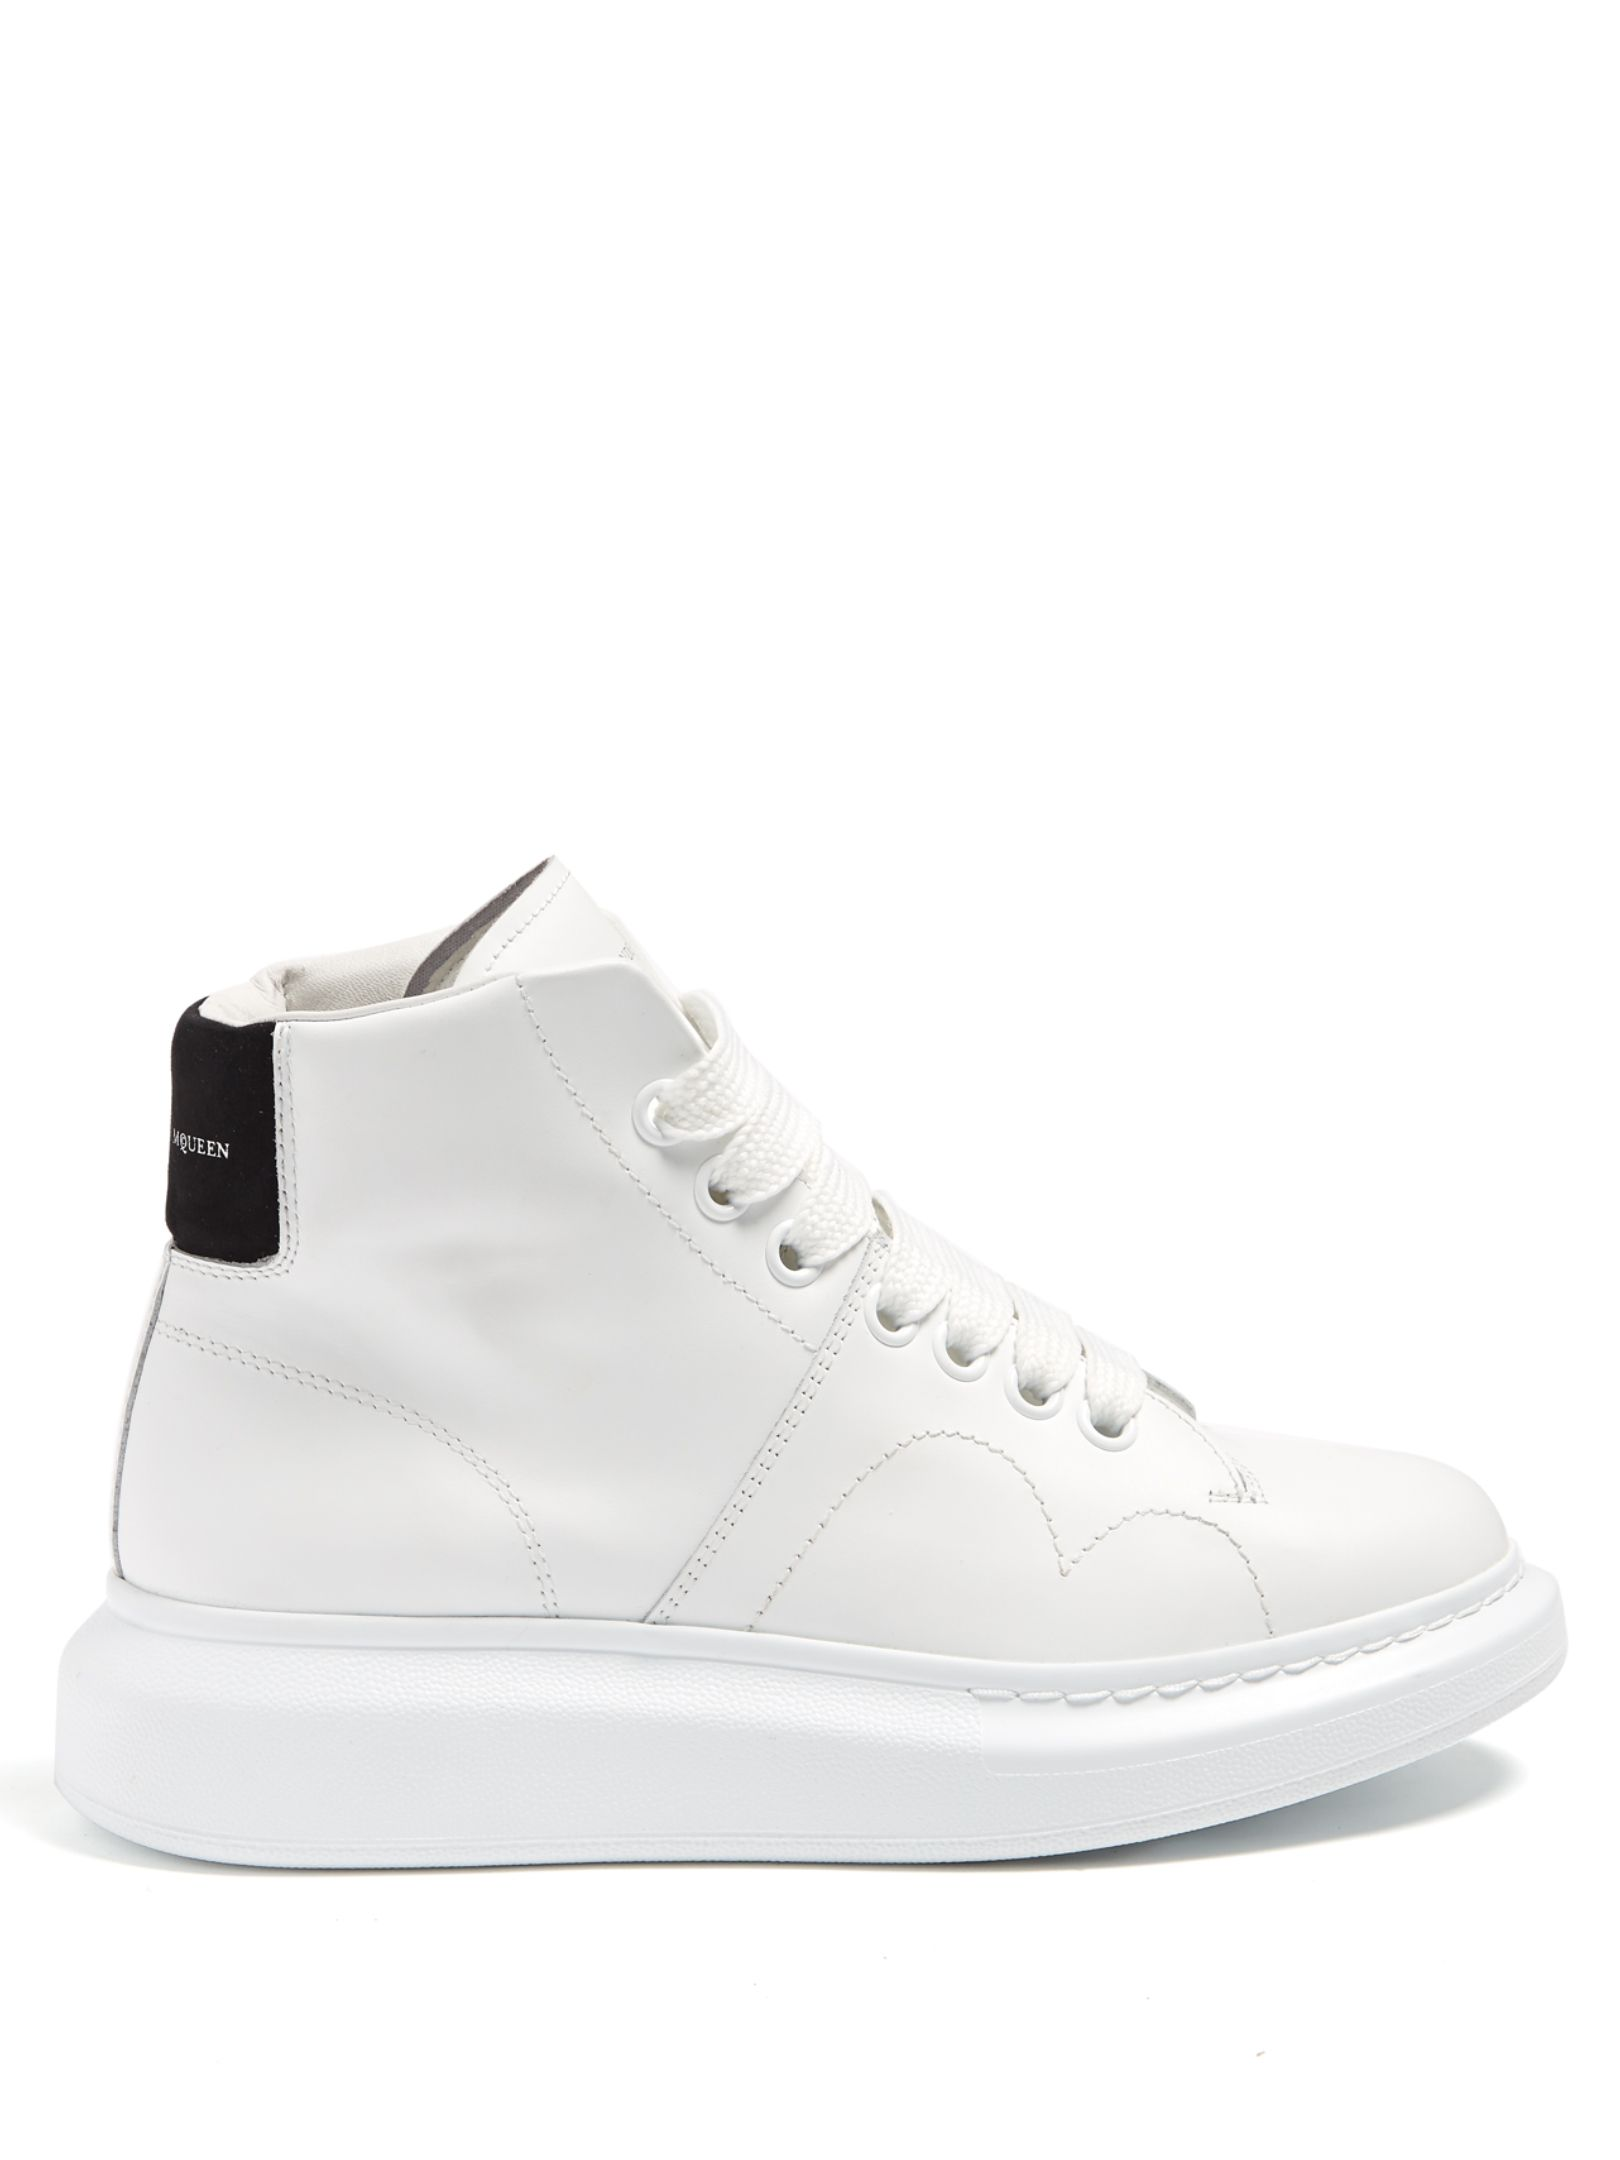 f581ed1229a541 Alexander McQueen Raised-sole high-top leather trainers